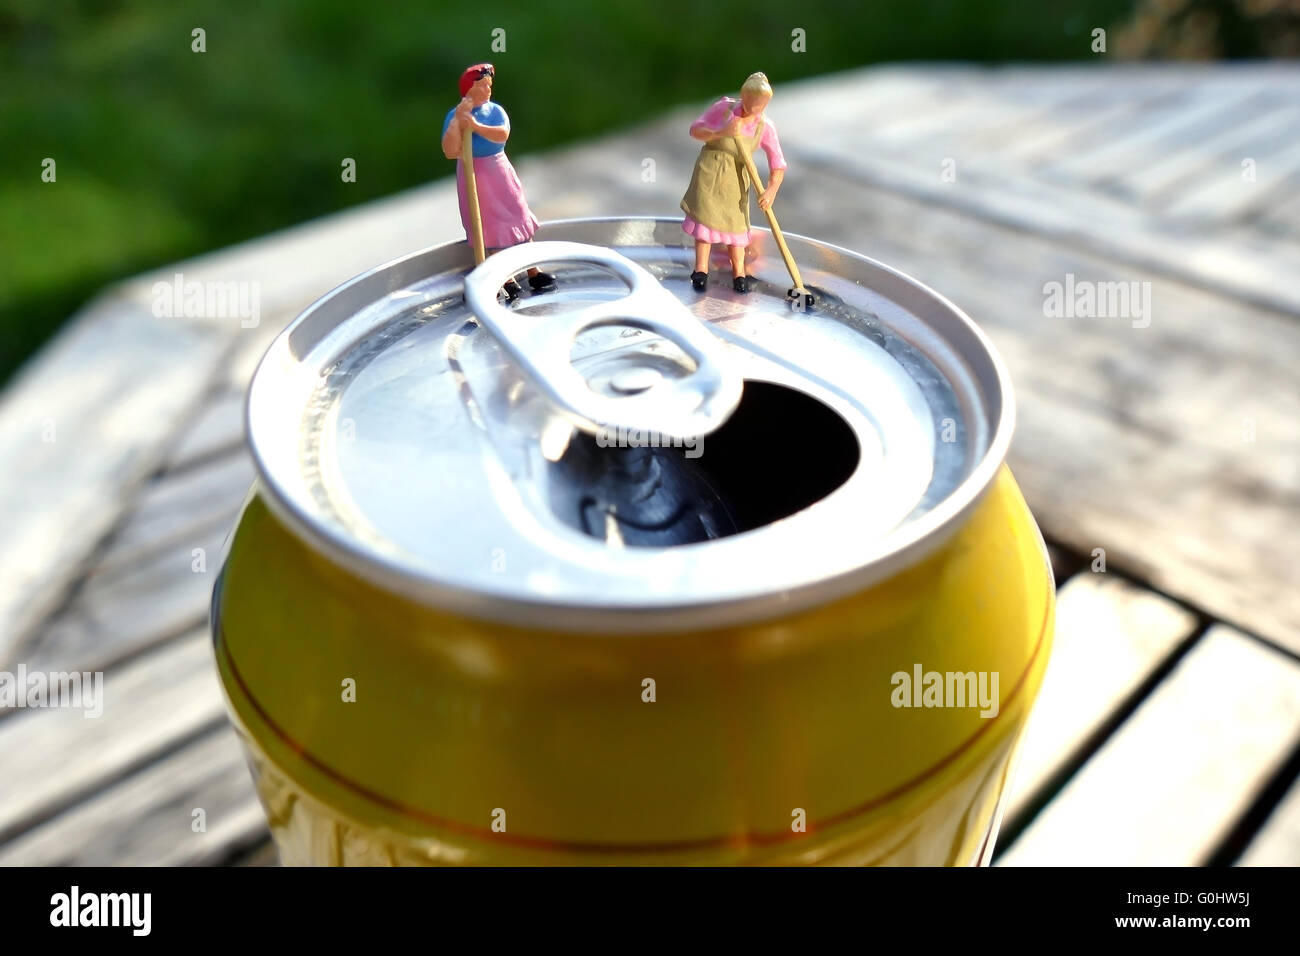 Miniature cleaning women sweeping on top of soda can with blurred background. Business concept Stock Photo